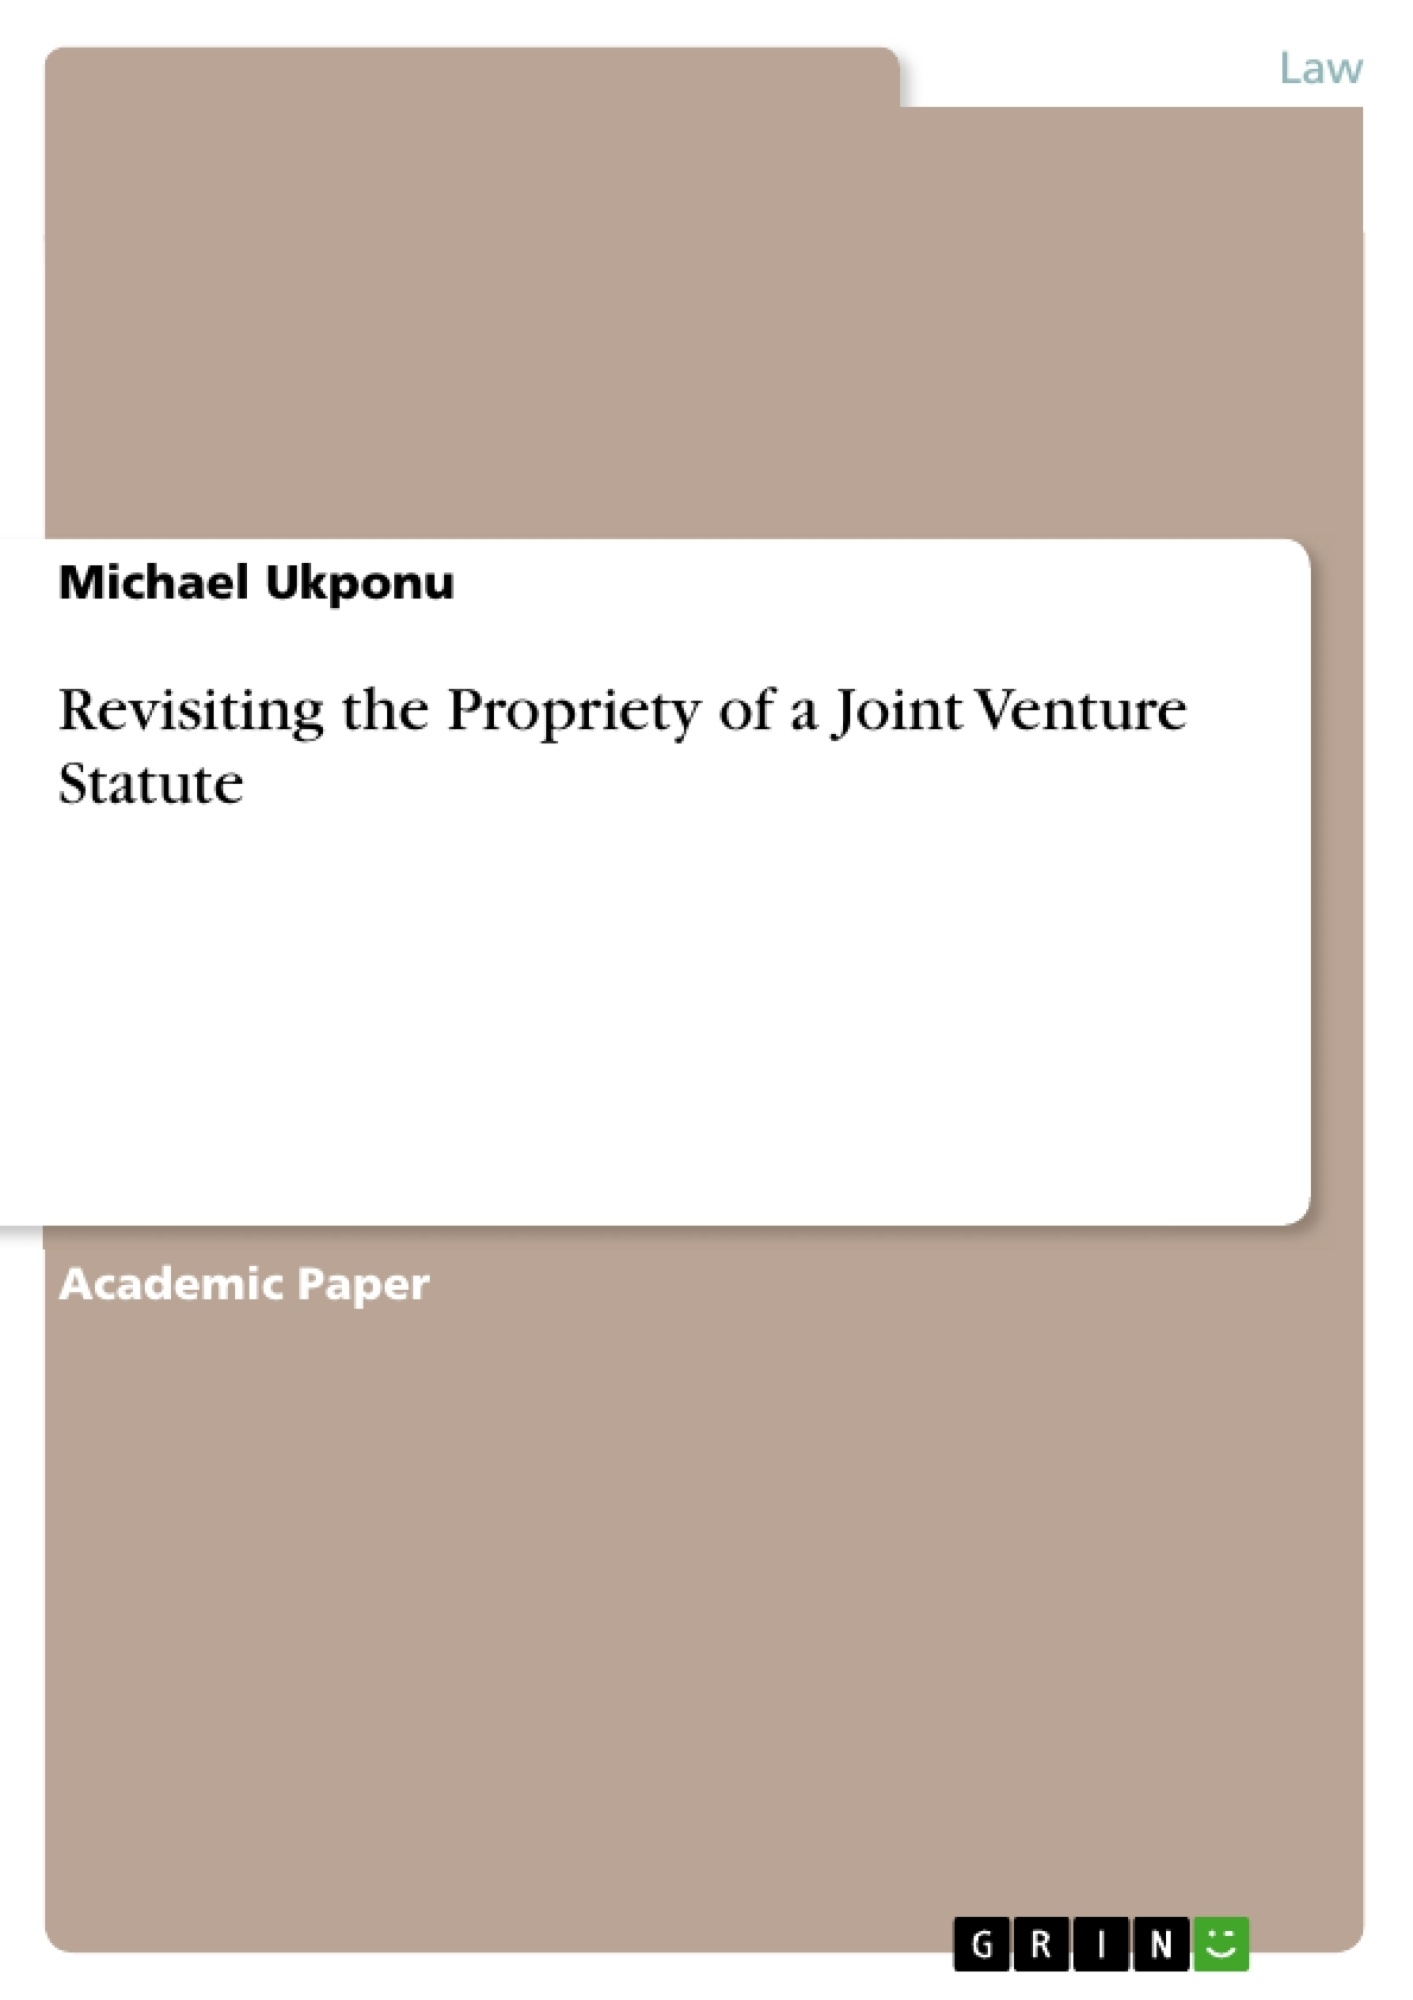 Title: Revisiting the Propriety of a Joint Venture Statute